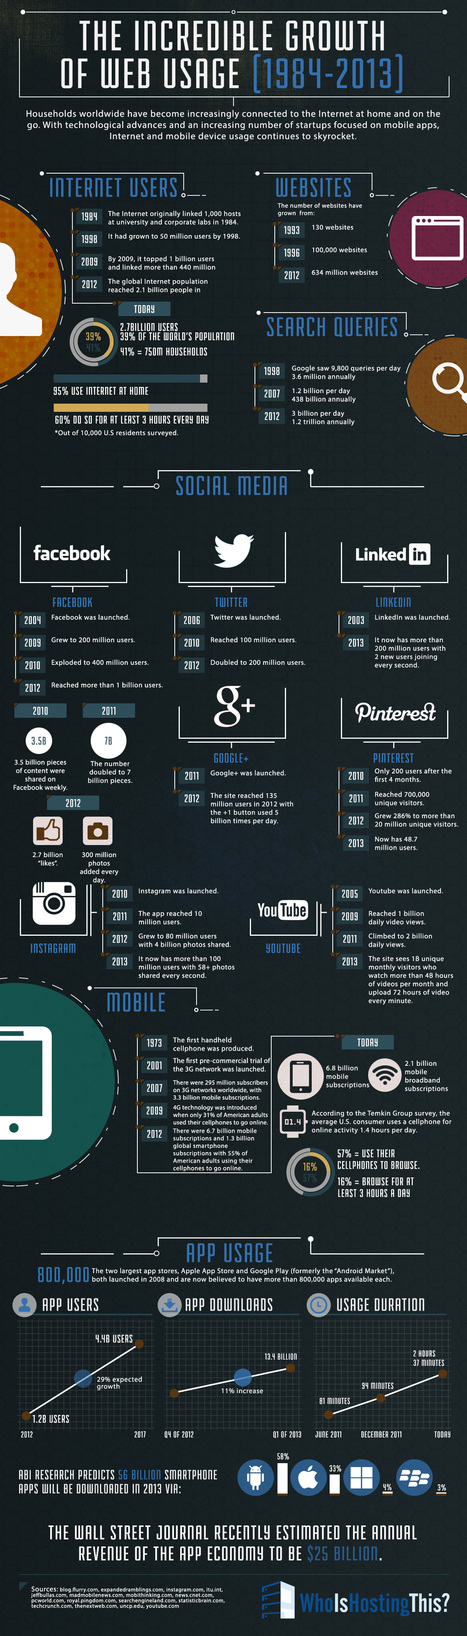 Infographic: The Incredible Growth of Web Usage [1984-2013] | language and technology | Scoop.it